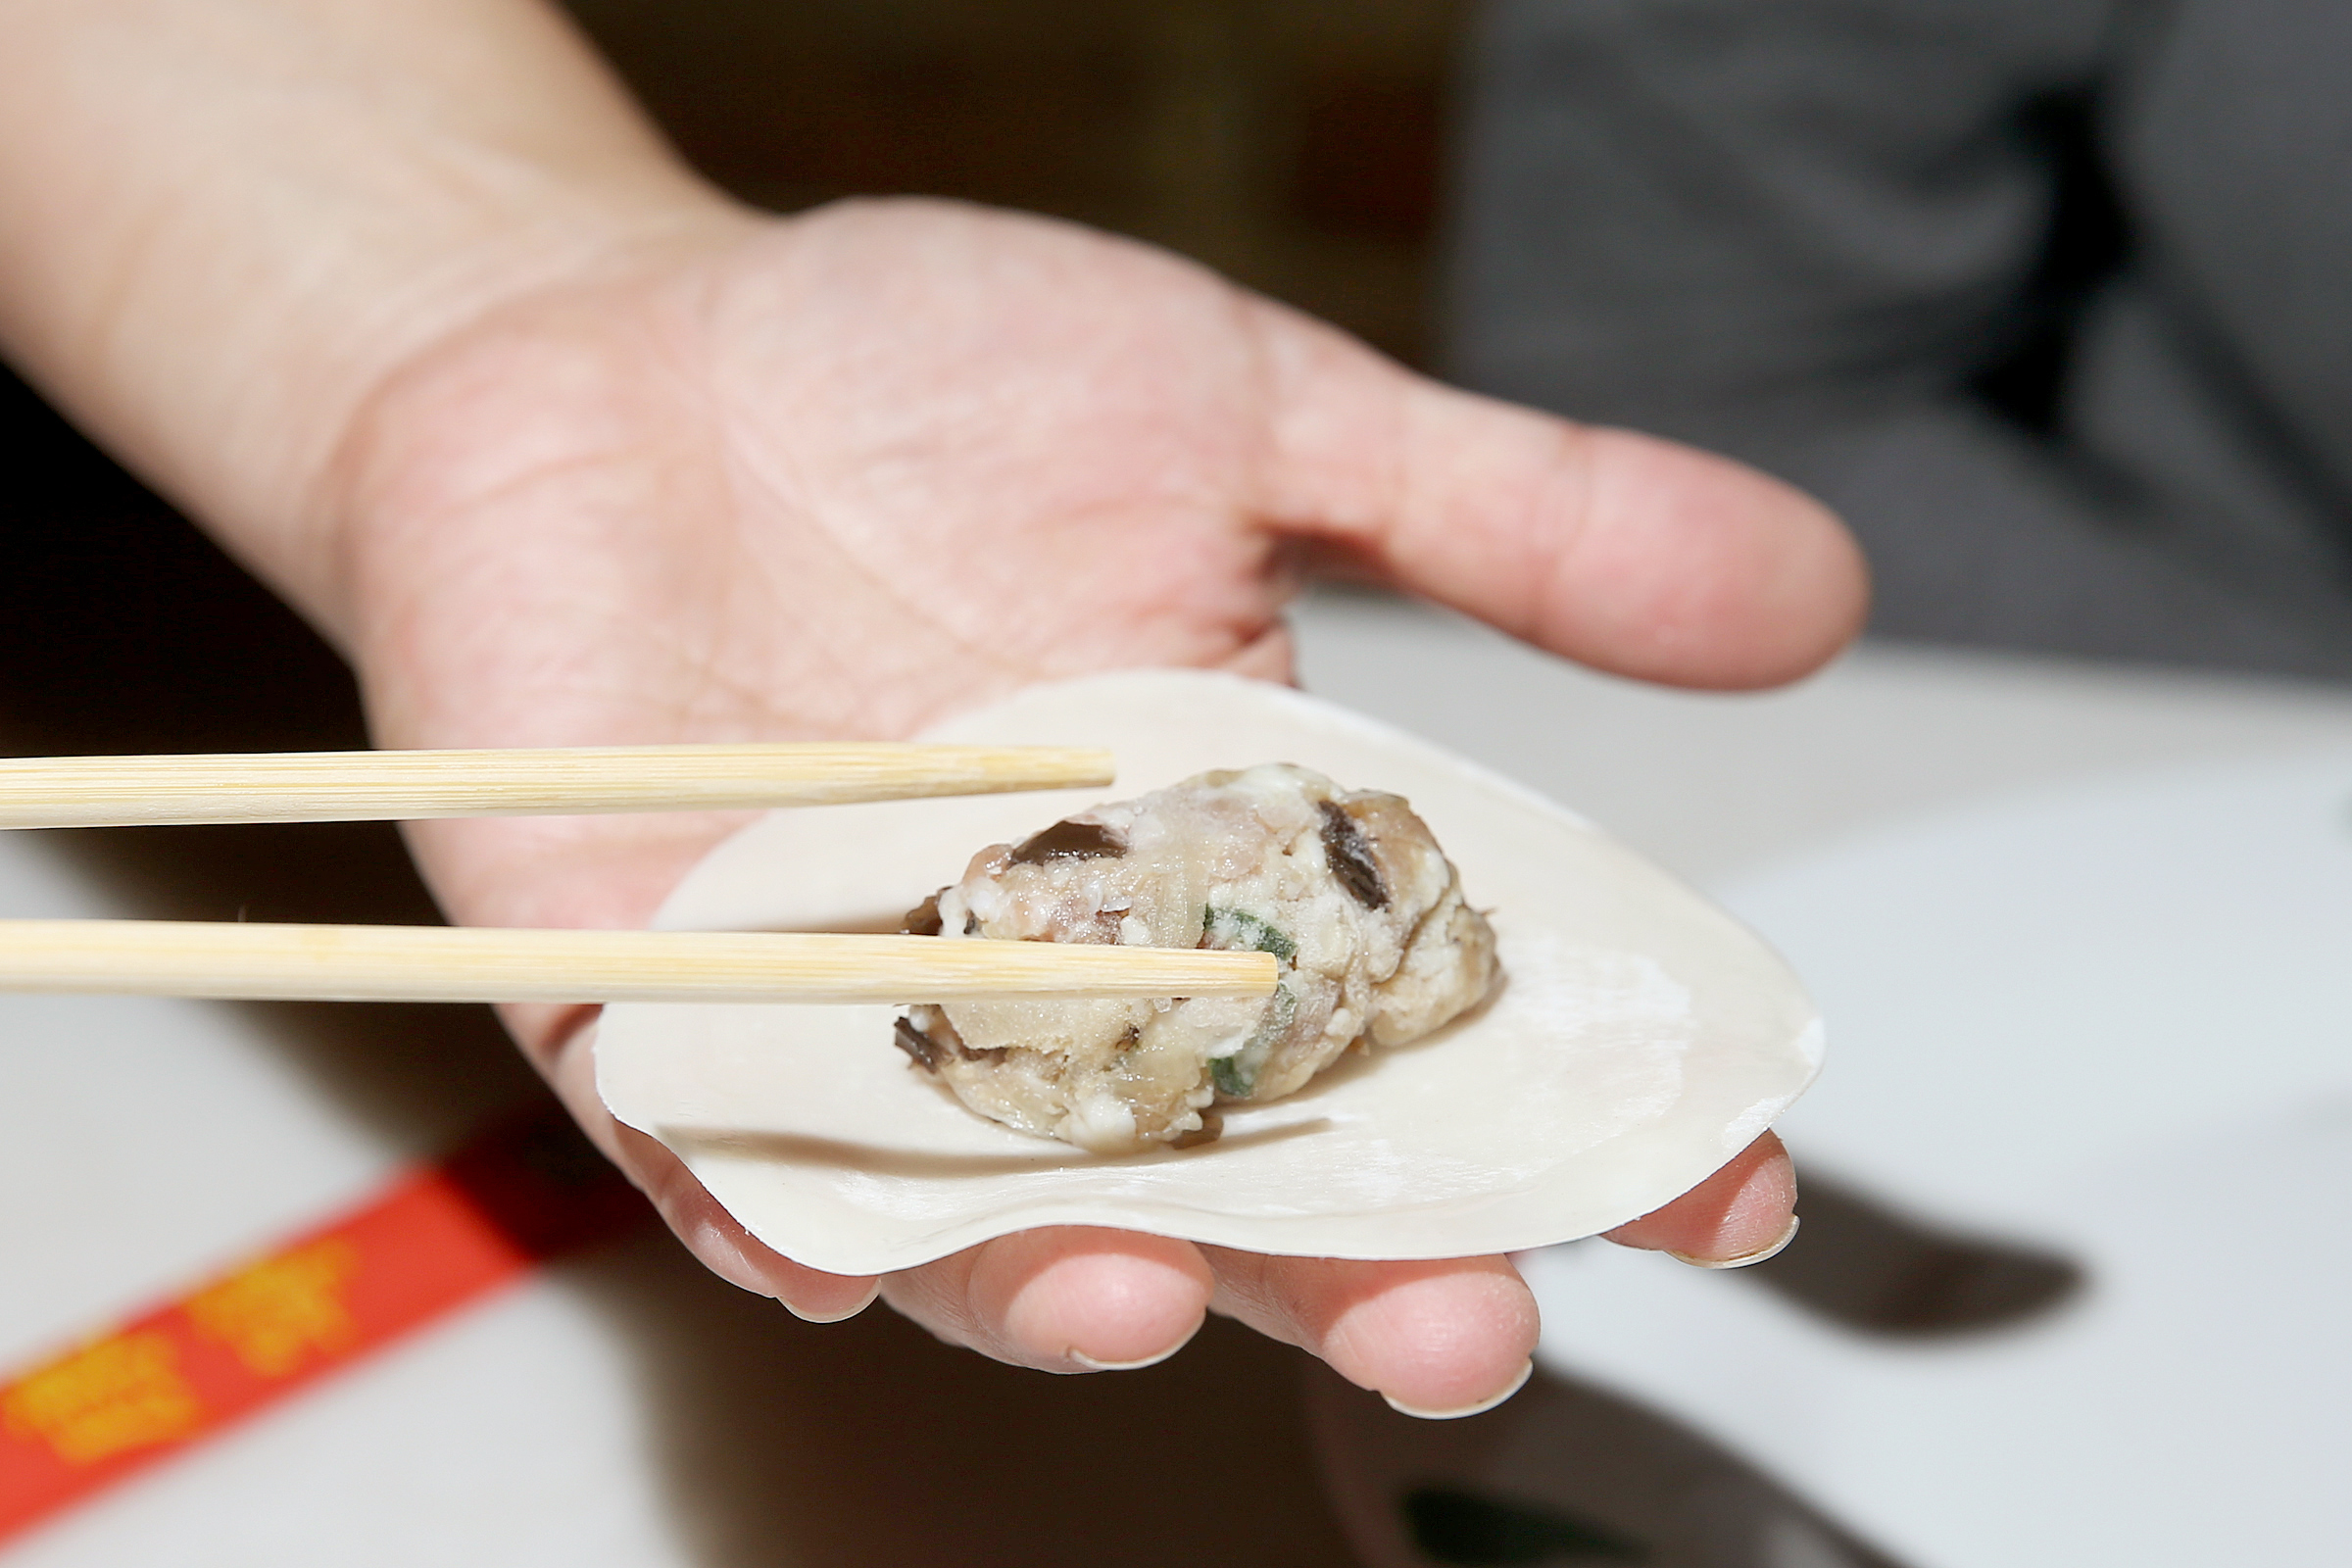 """Chef-owner Ange Branca demonstrates how to wrap your own dumplings at Saté Kampar in South Philadelphia on Wednesday, Sept. 19, 2018. The restaurant is offering a reservation-only """"Crazy Rich Asians"""" themed dinner."""